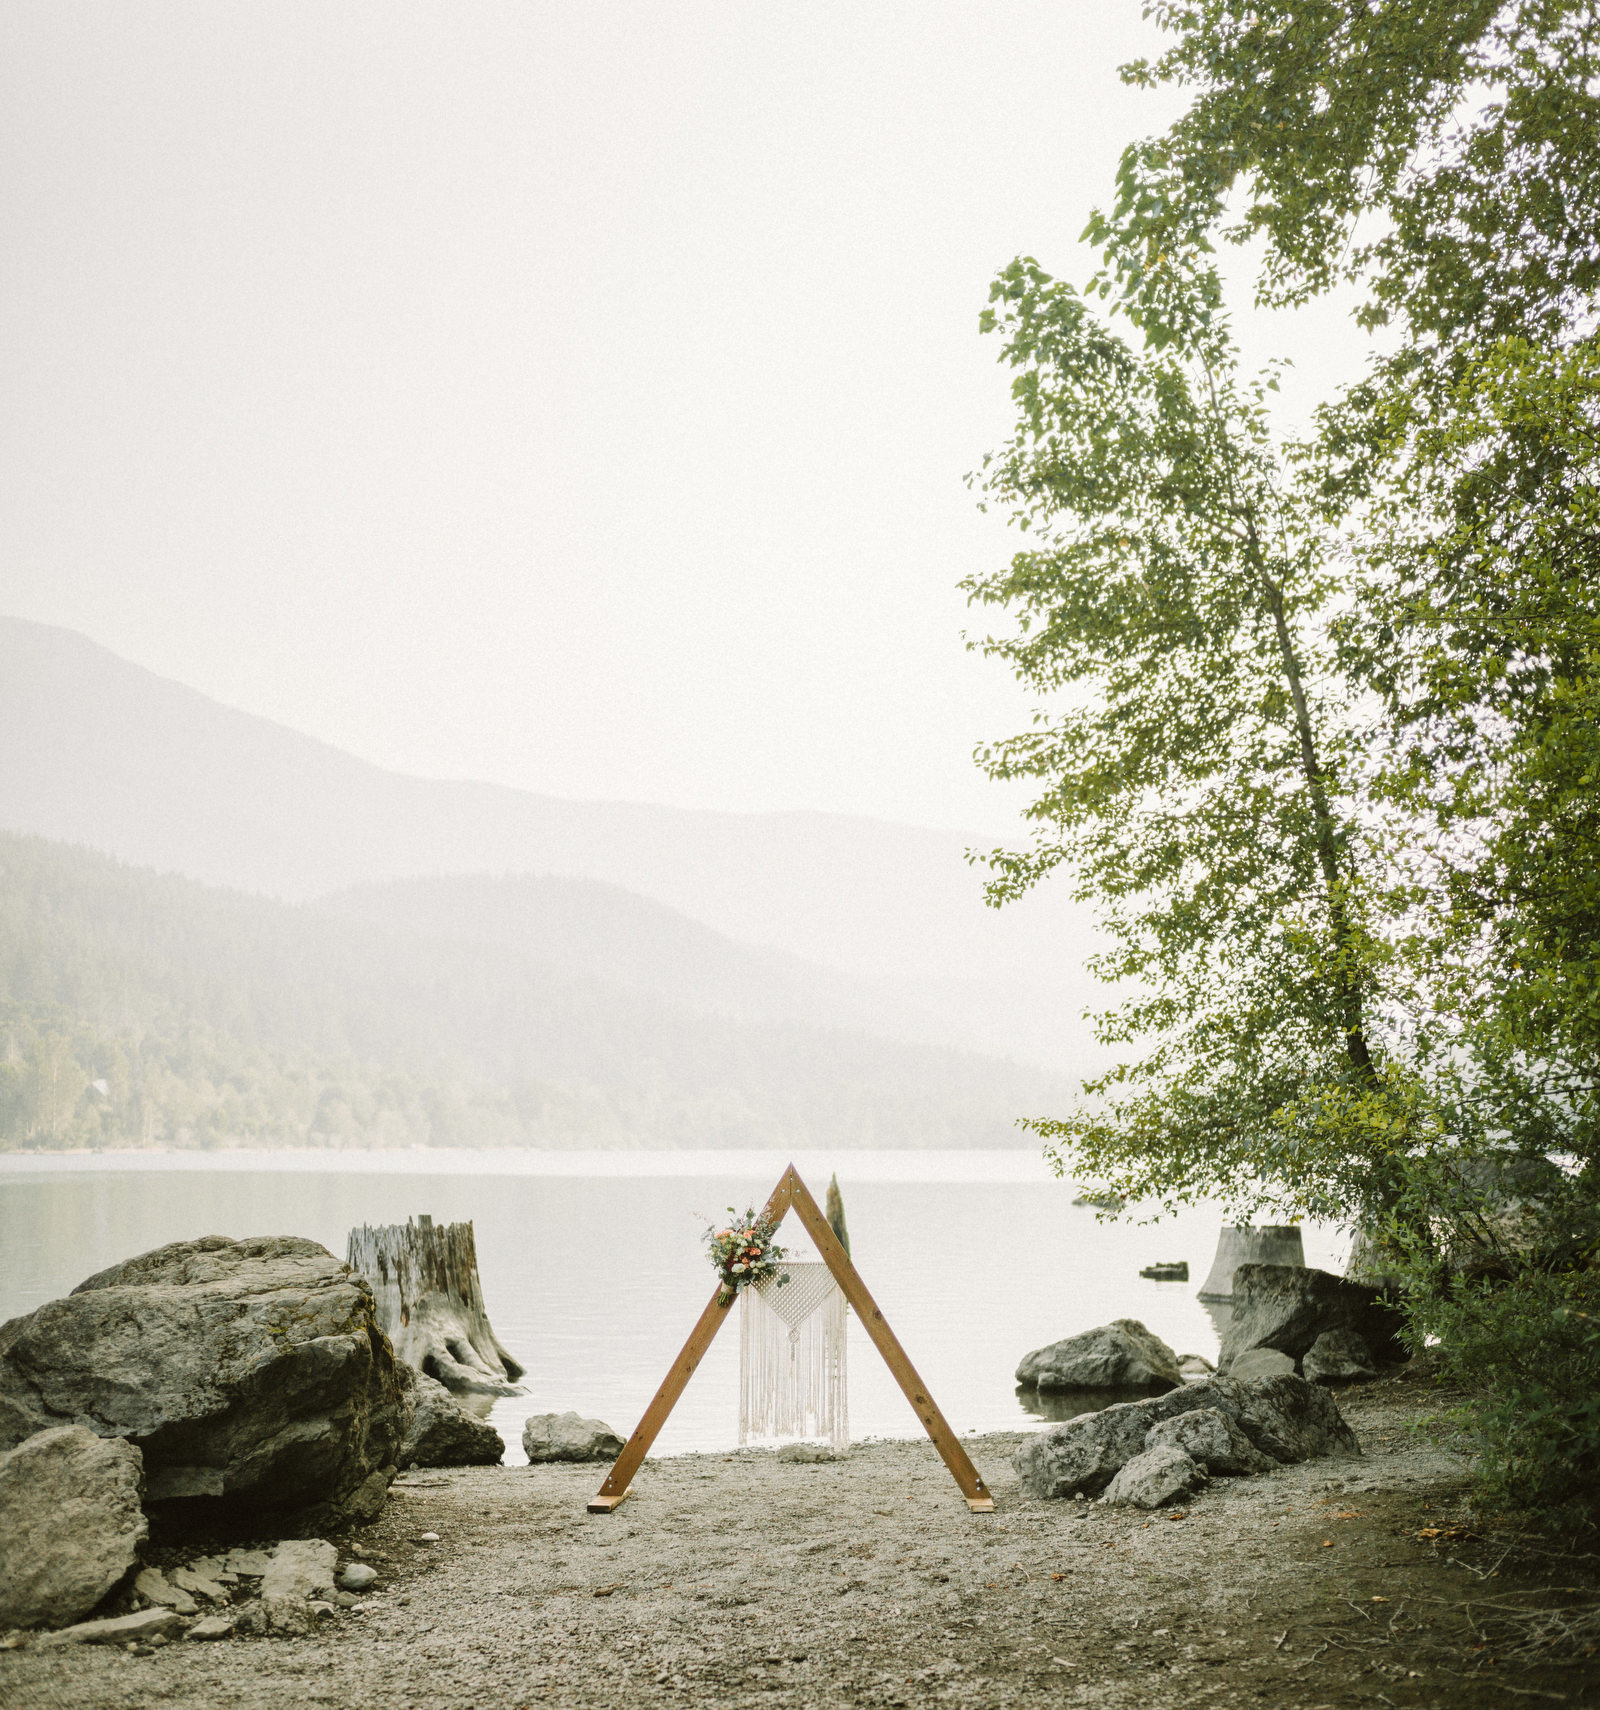 athena-and-camron-seattle-elopement-wedding-benj-haisch-rattlesnake-lake-christian-couple-goals37